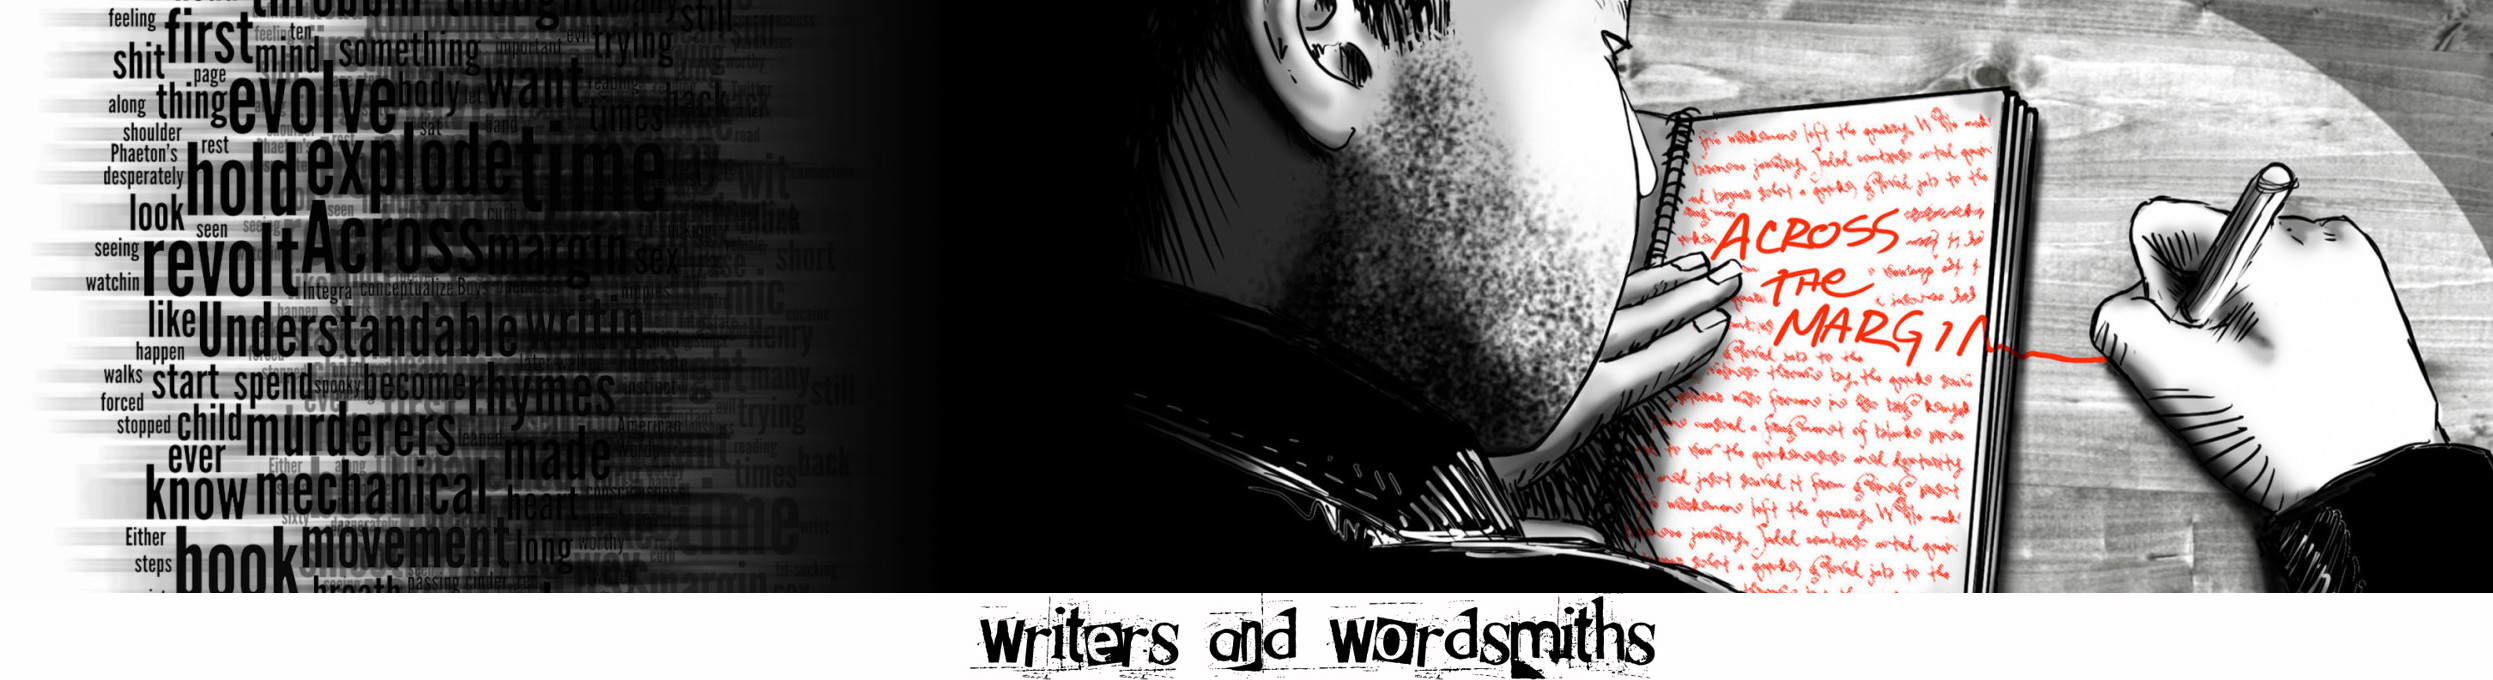 acrossthemargin - writers & wordsmiths